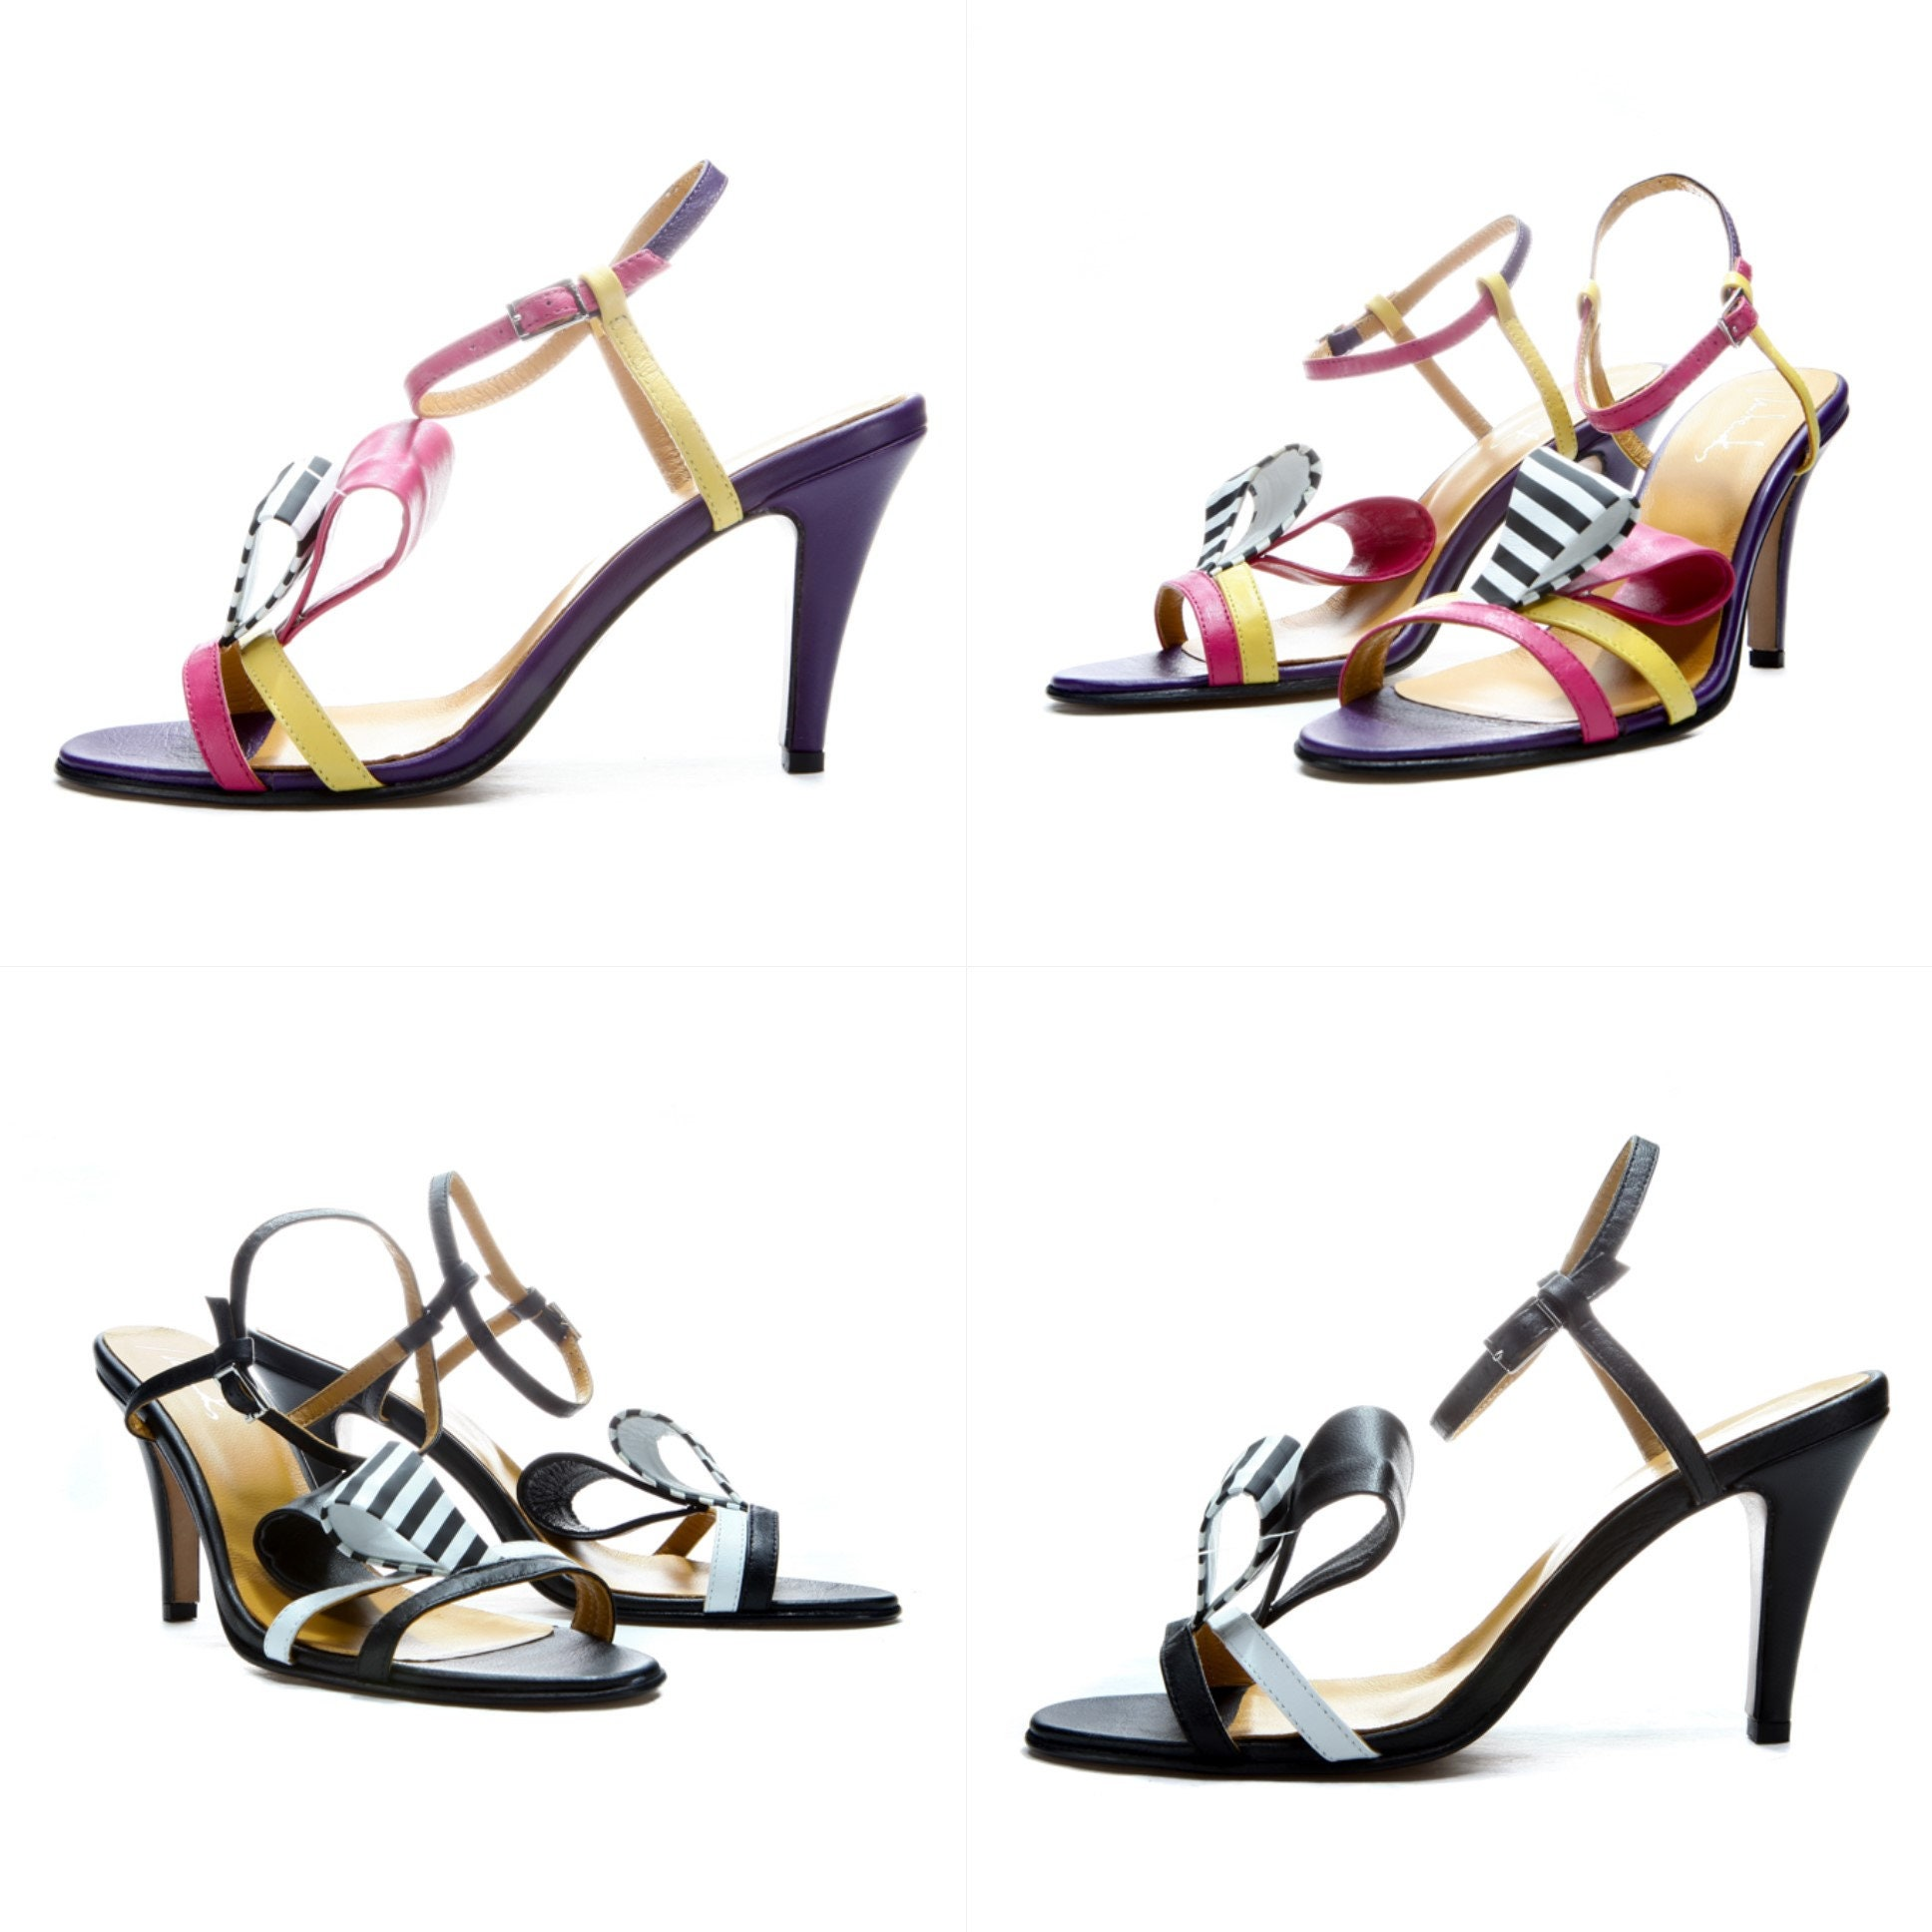 Handmade Strappy sandals/ Elegant sandals/ Wedding shoes/ Unique heels/ shoes/ FREE SHIPPING/ high heels/ Unique Ankle strap/ sexy shoes/ Handmade shoes e72bea